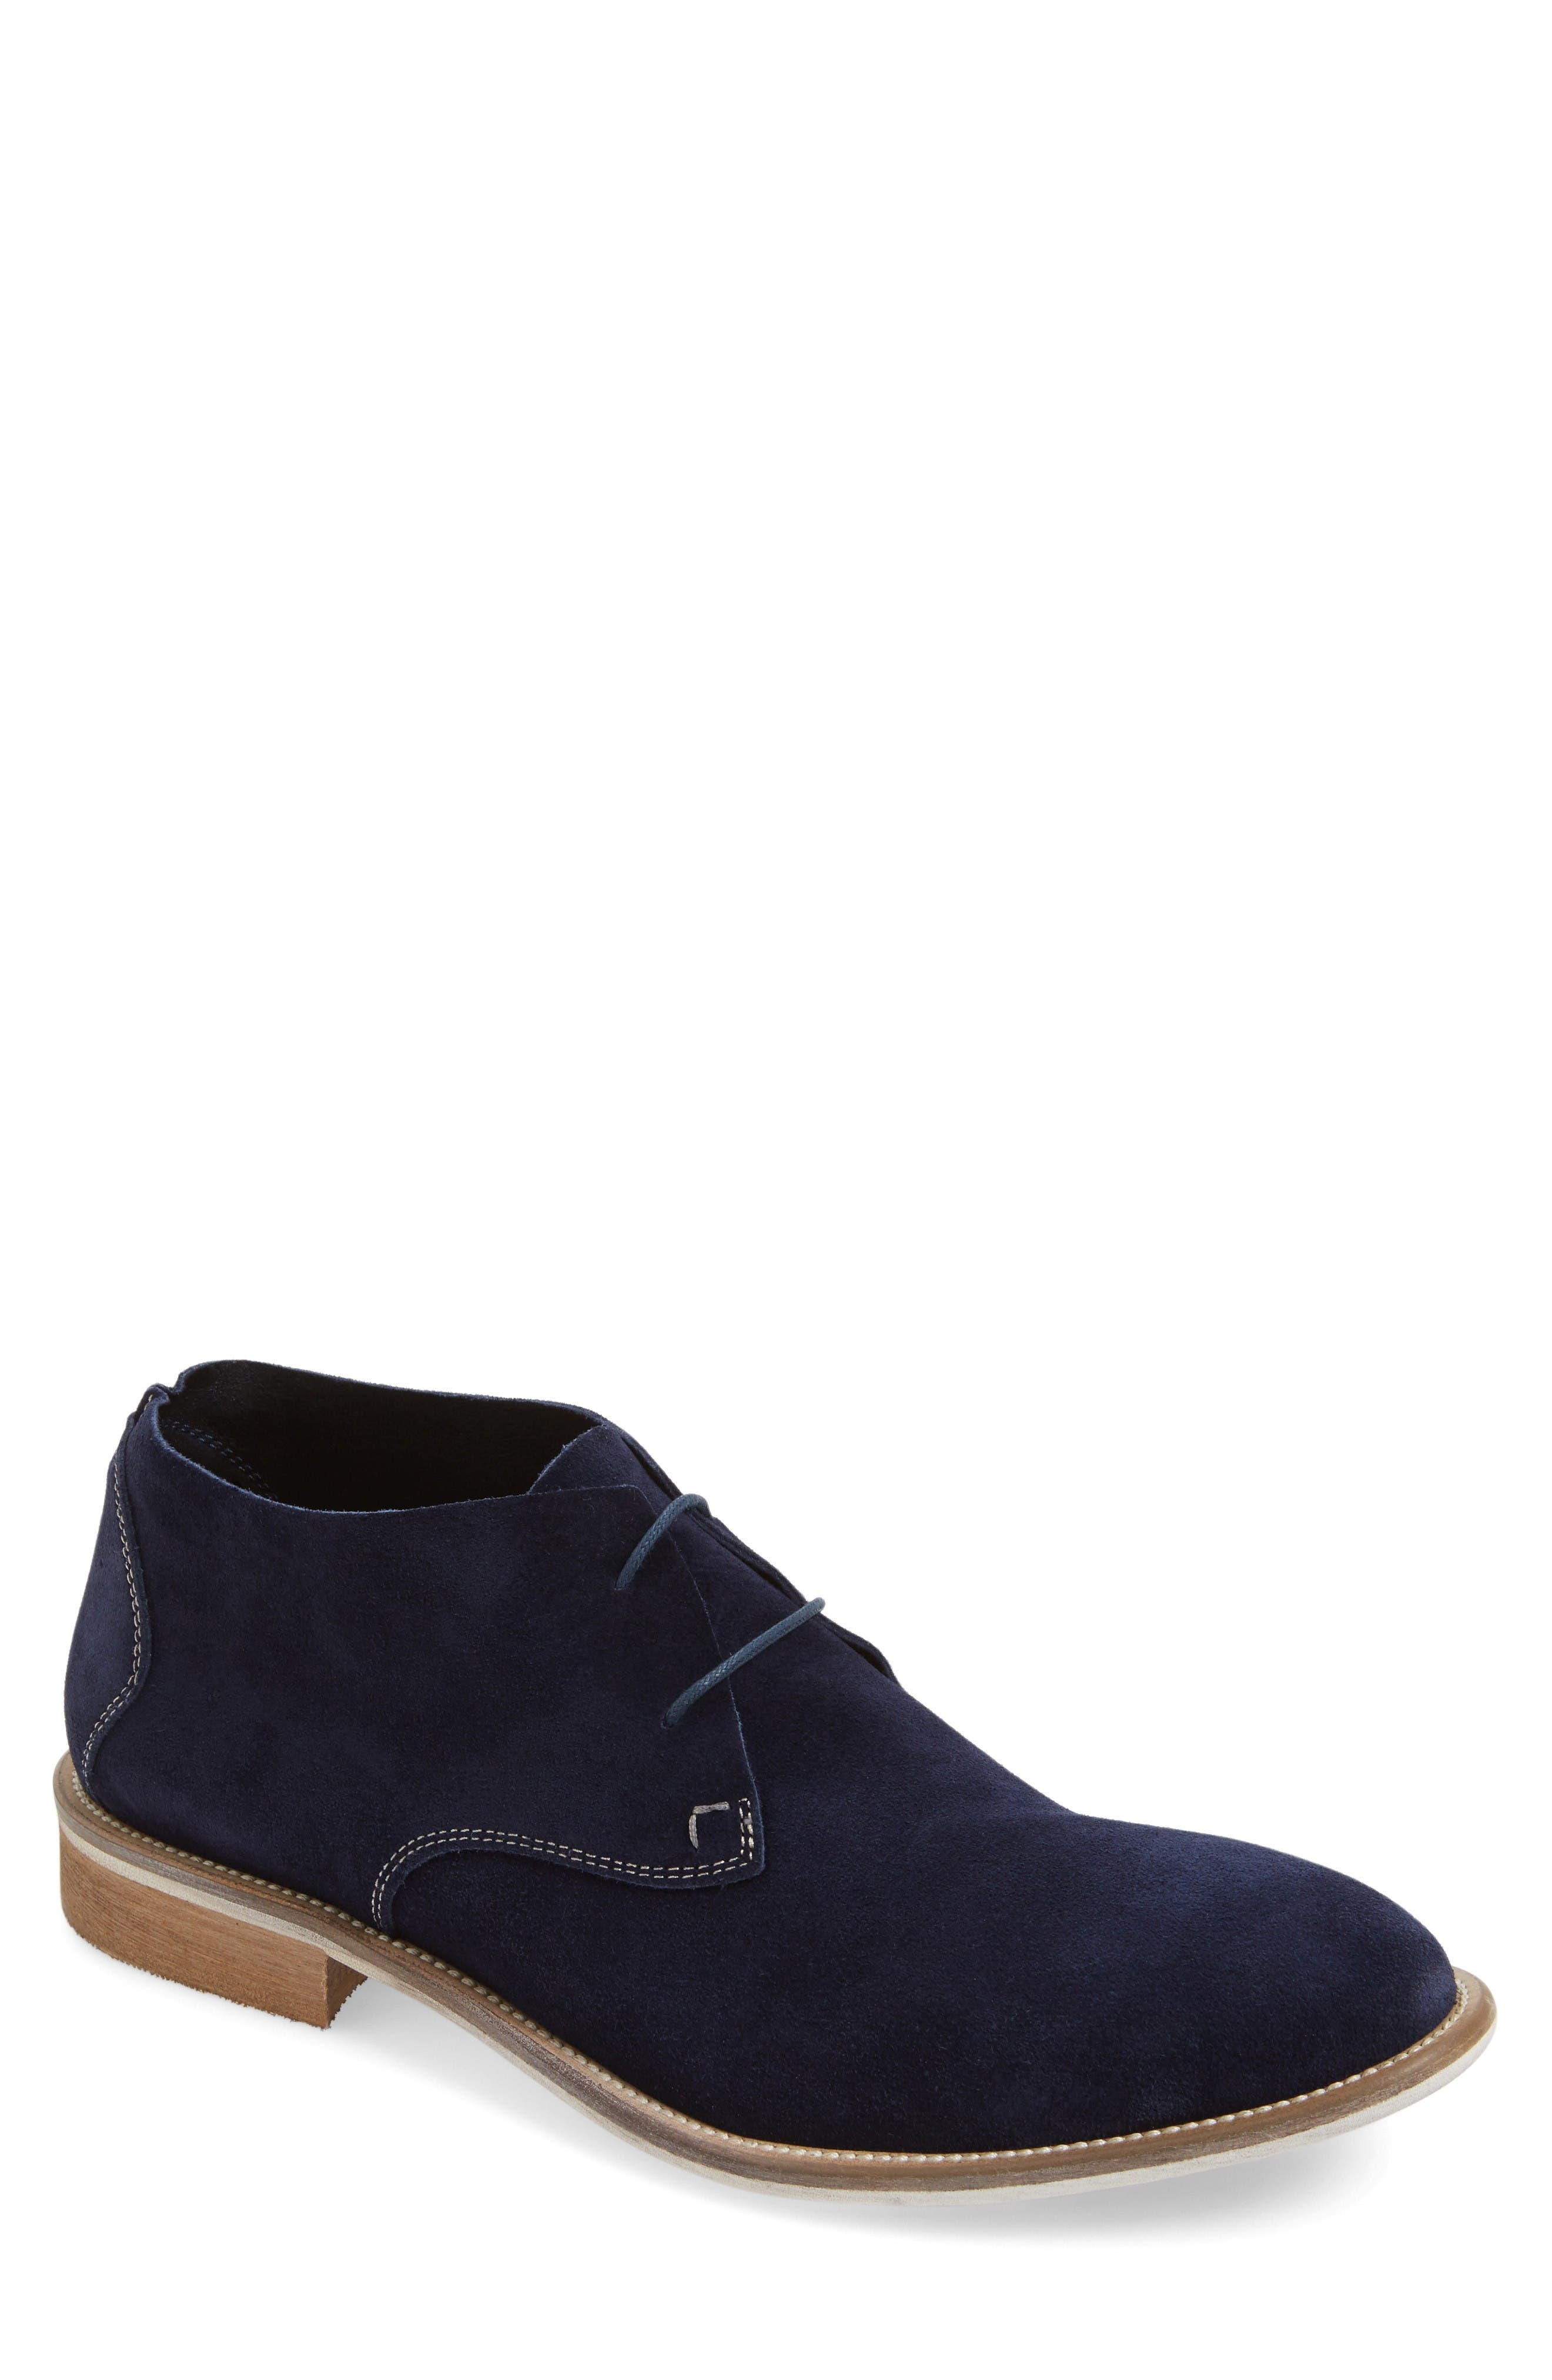 Take Comfort Chukka Boot,                         Main,                         color, Midnight Navy Suede